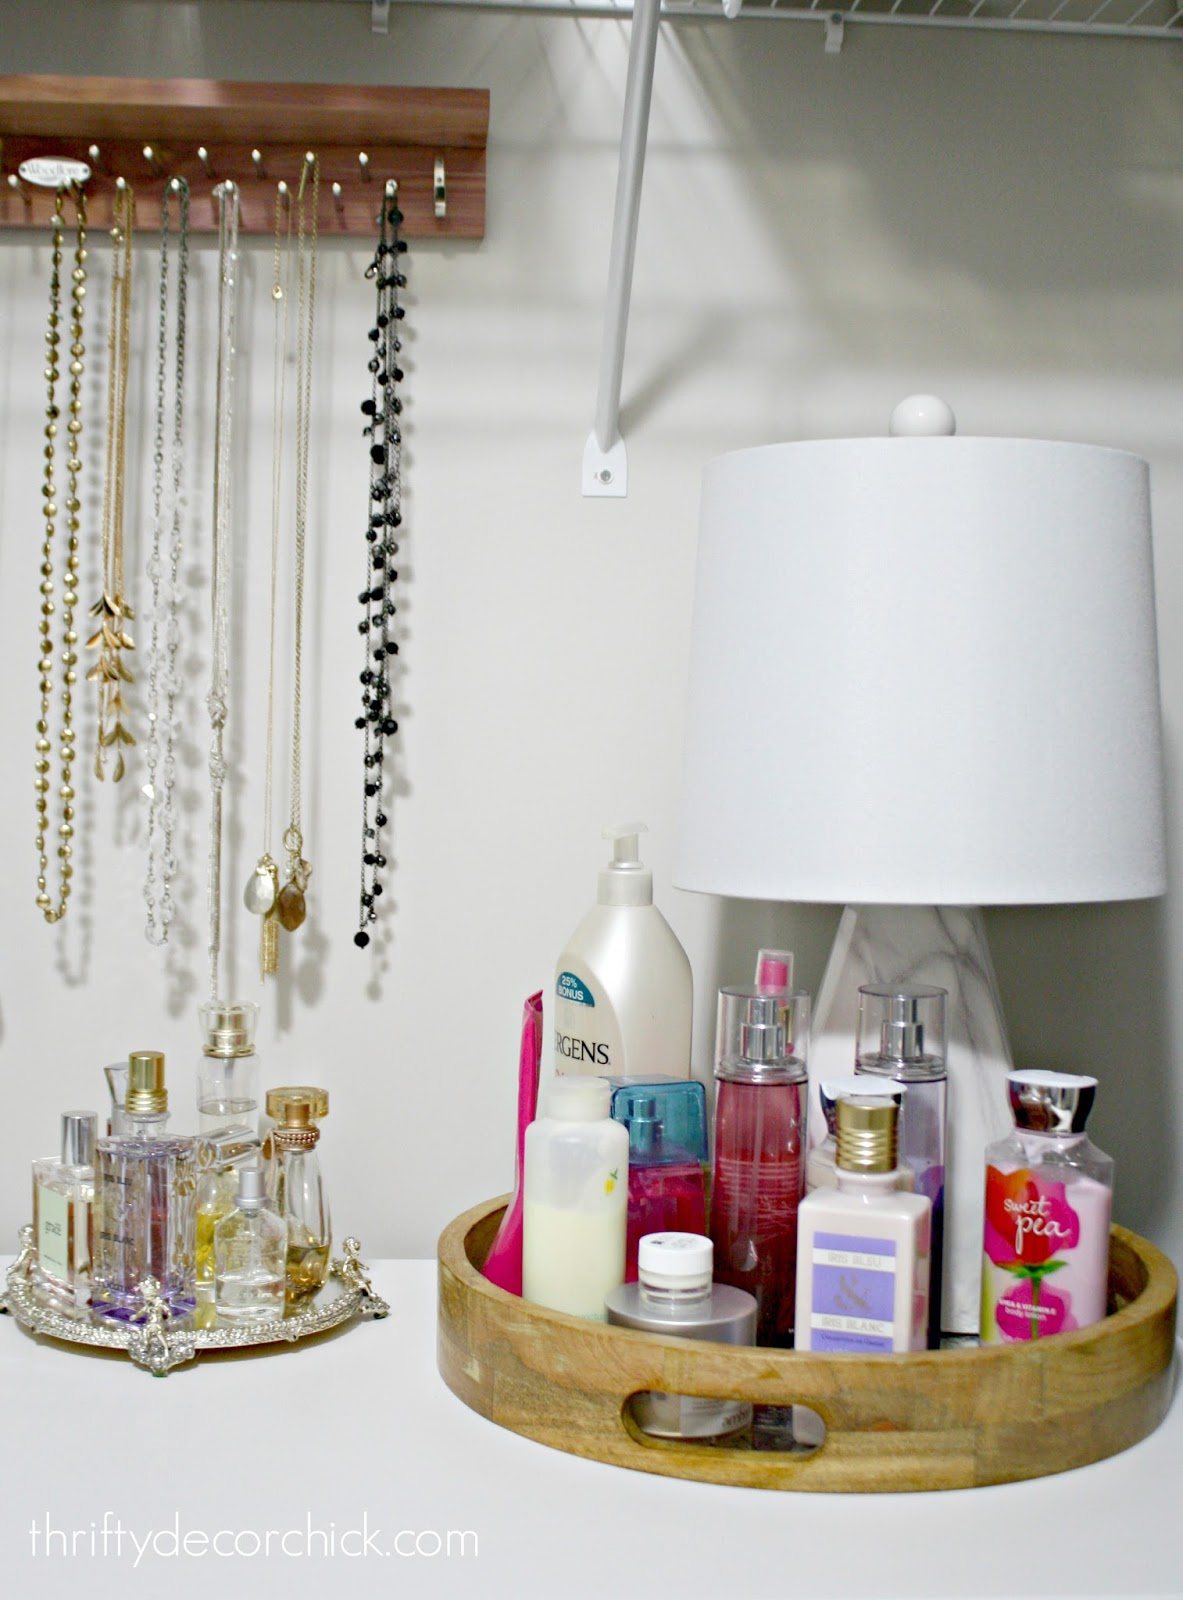 Displaying lotions and perfume